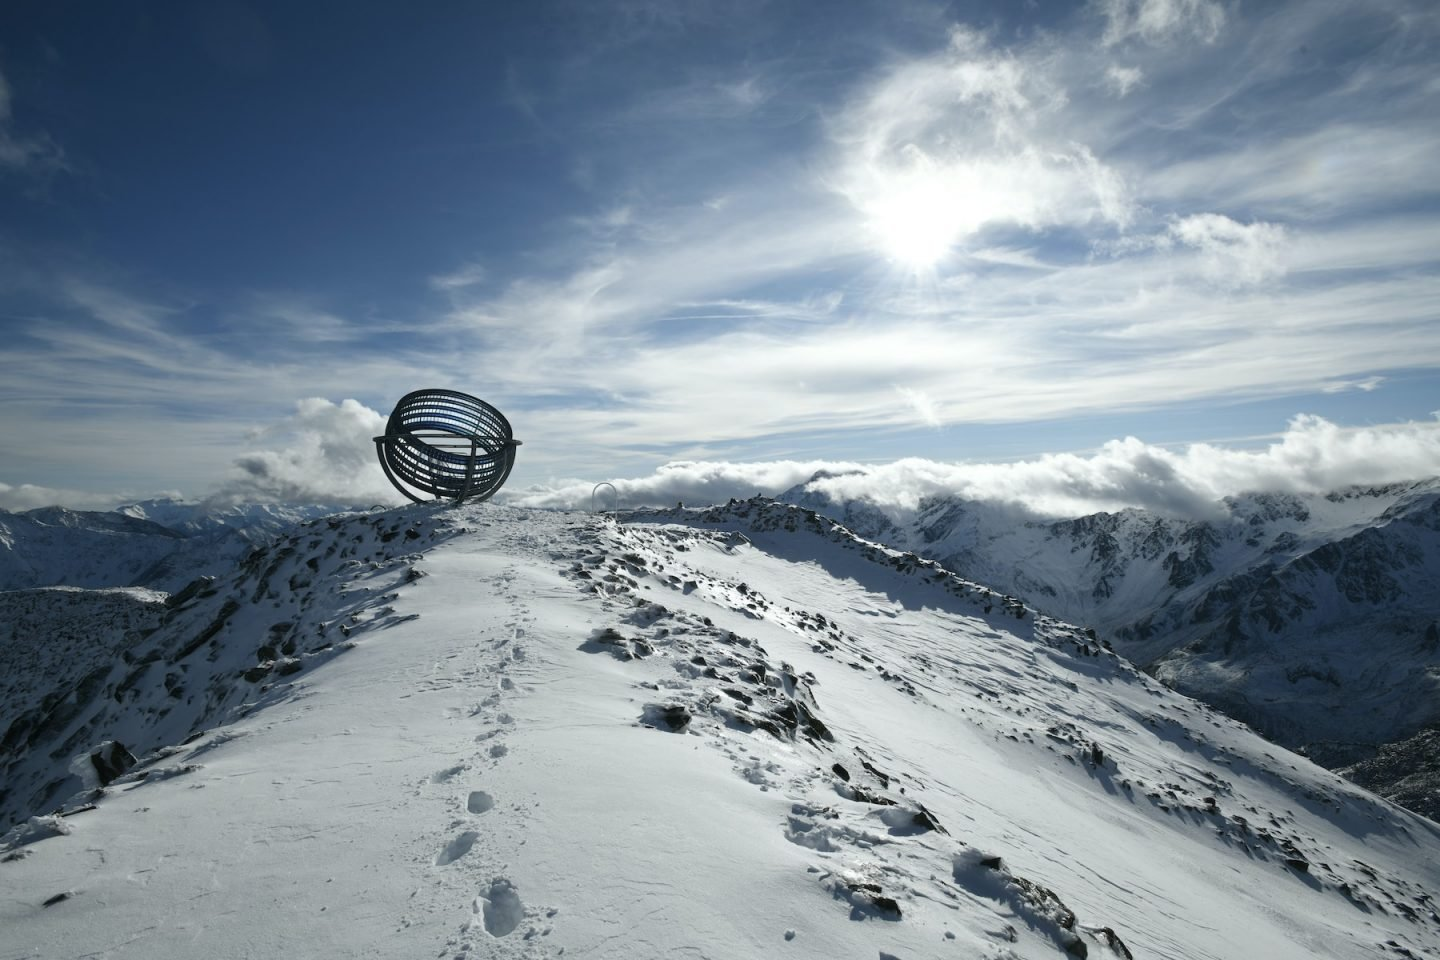 IGNANT-Art-Olafur-Eliasson-Our-Glacial-Perspectives-08-min